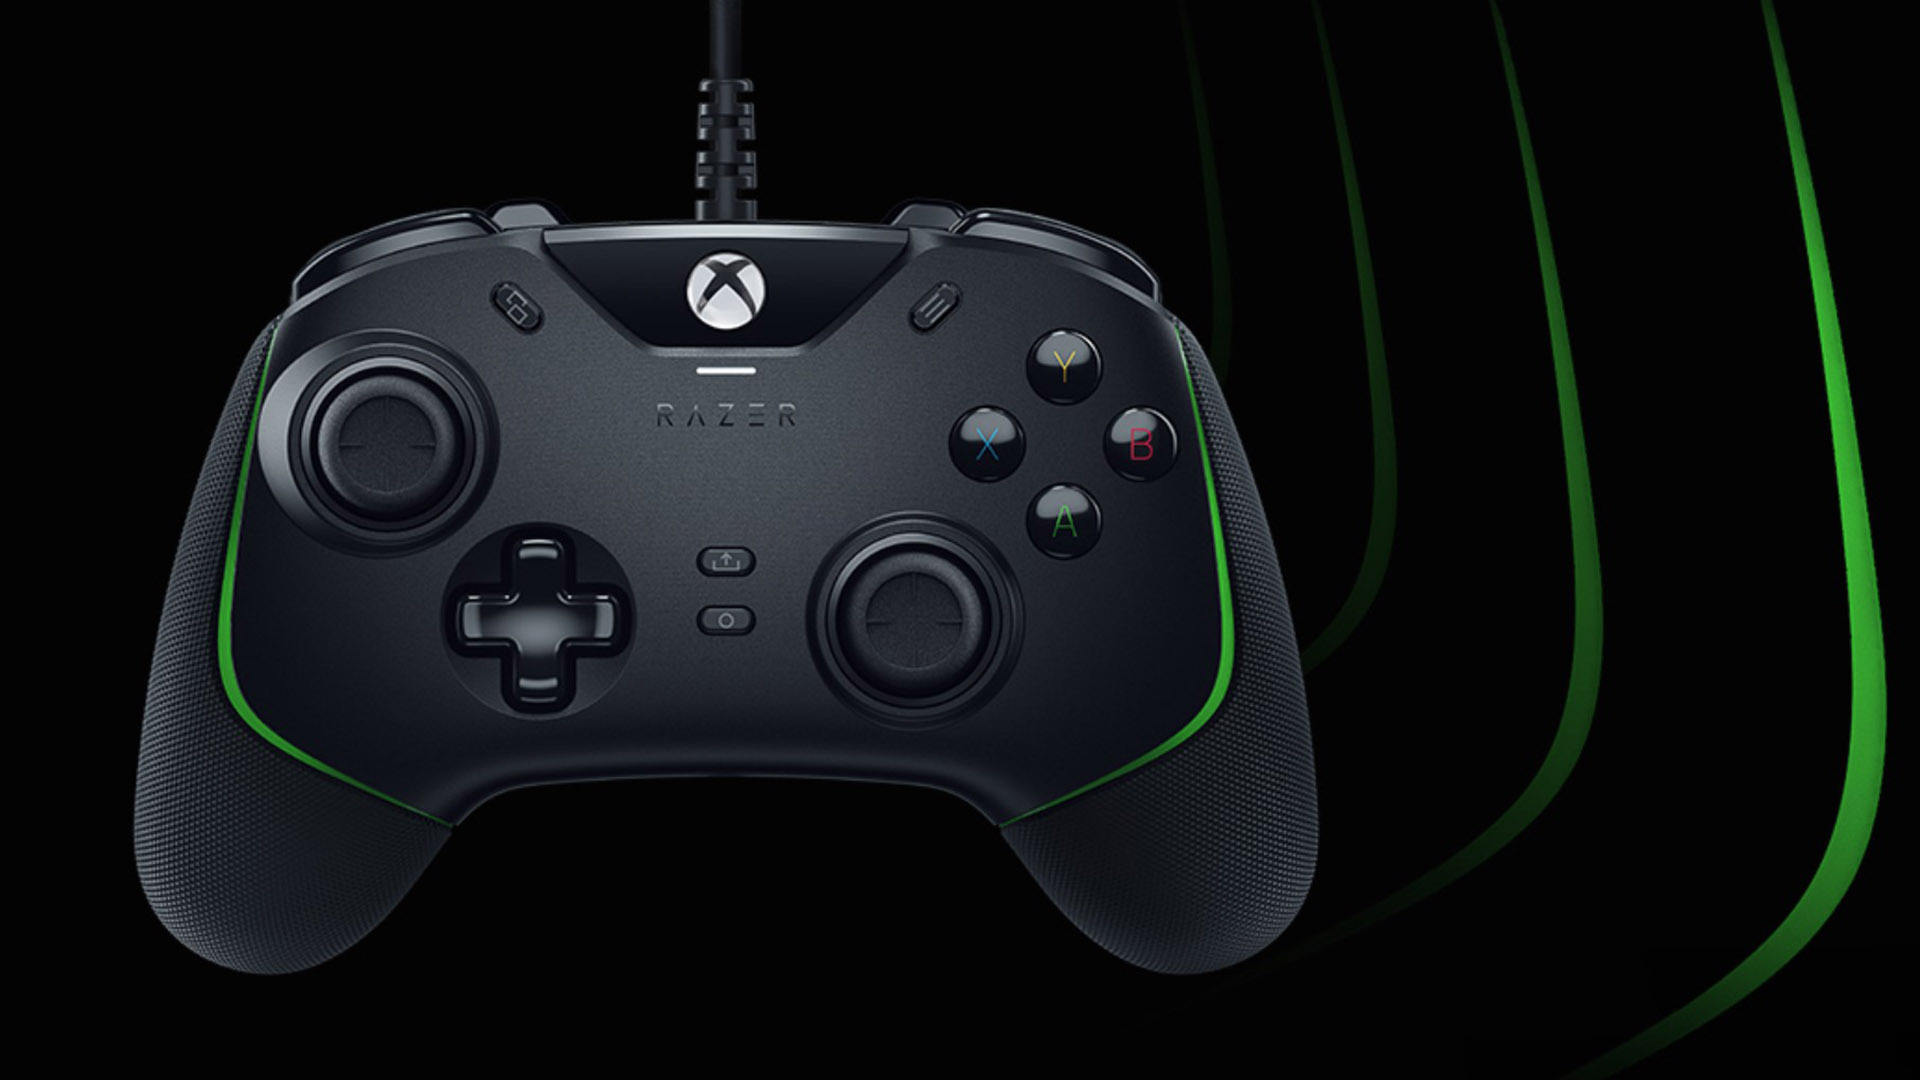 Wolverine V2 is not an X-Man, just a new Razer gamepad to rival Xbox's